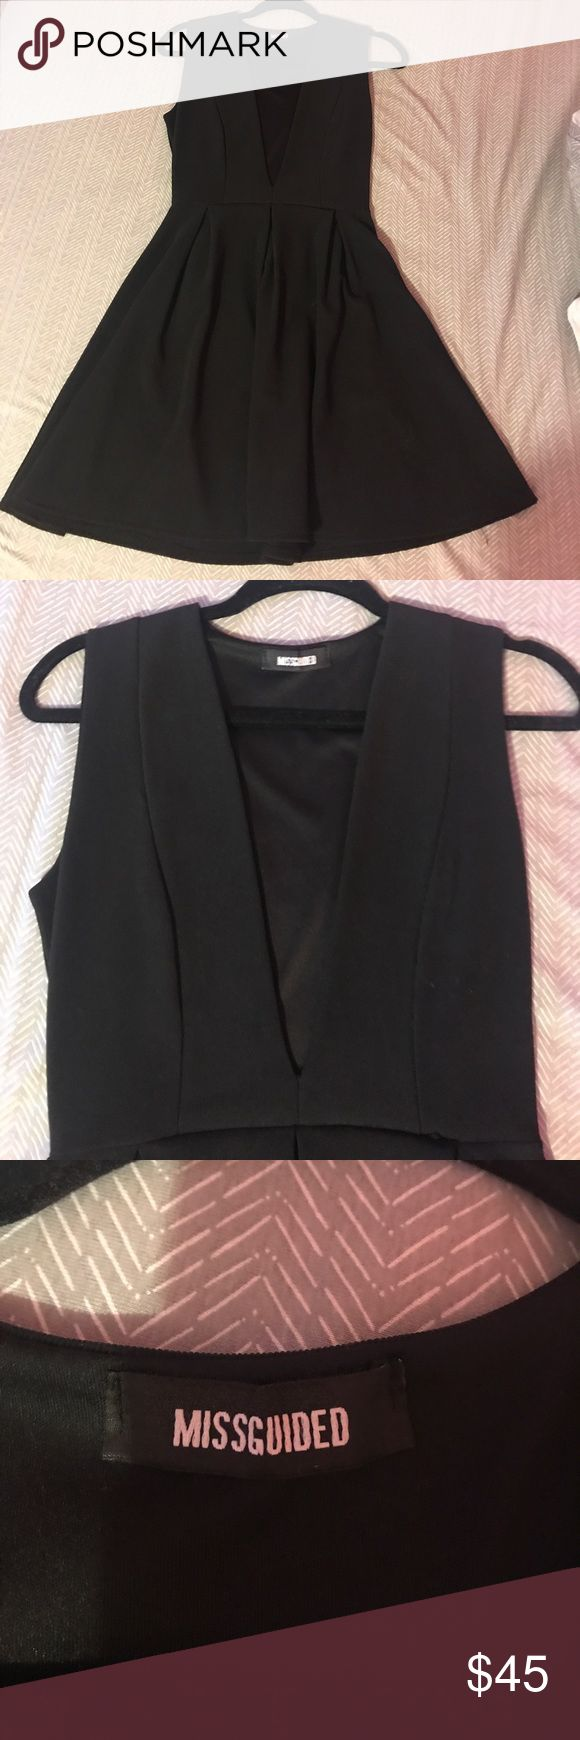 Black low cut Missguided dress Size 6 low cut dress that comes in in the middle and has a flowy bottom, 95% polyester Missguided Dresses Mini